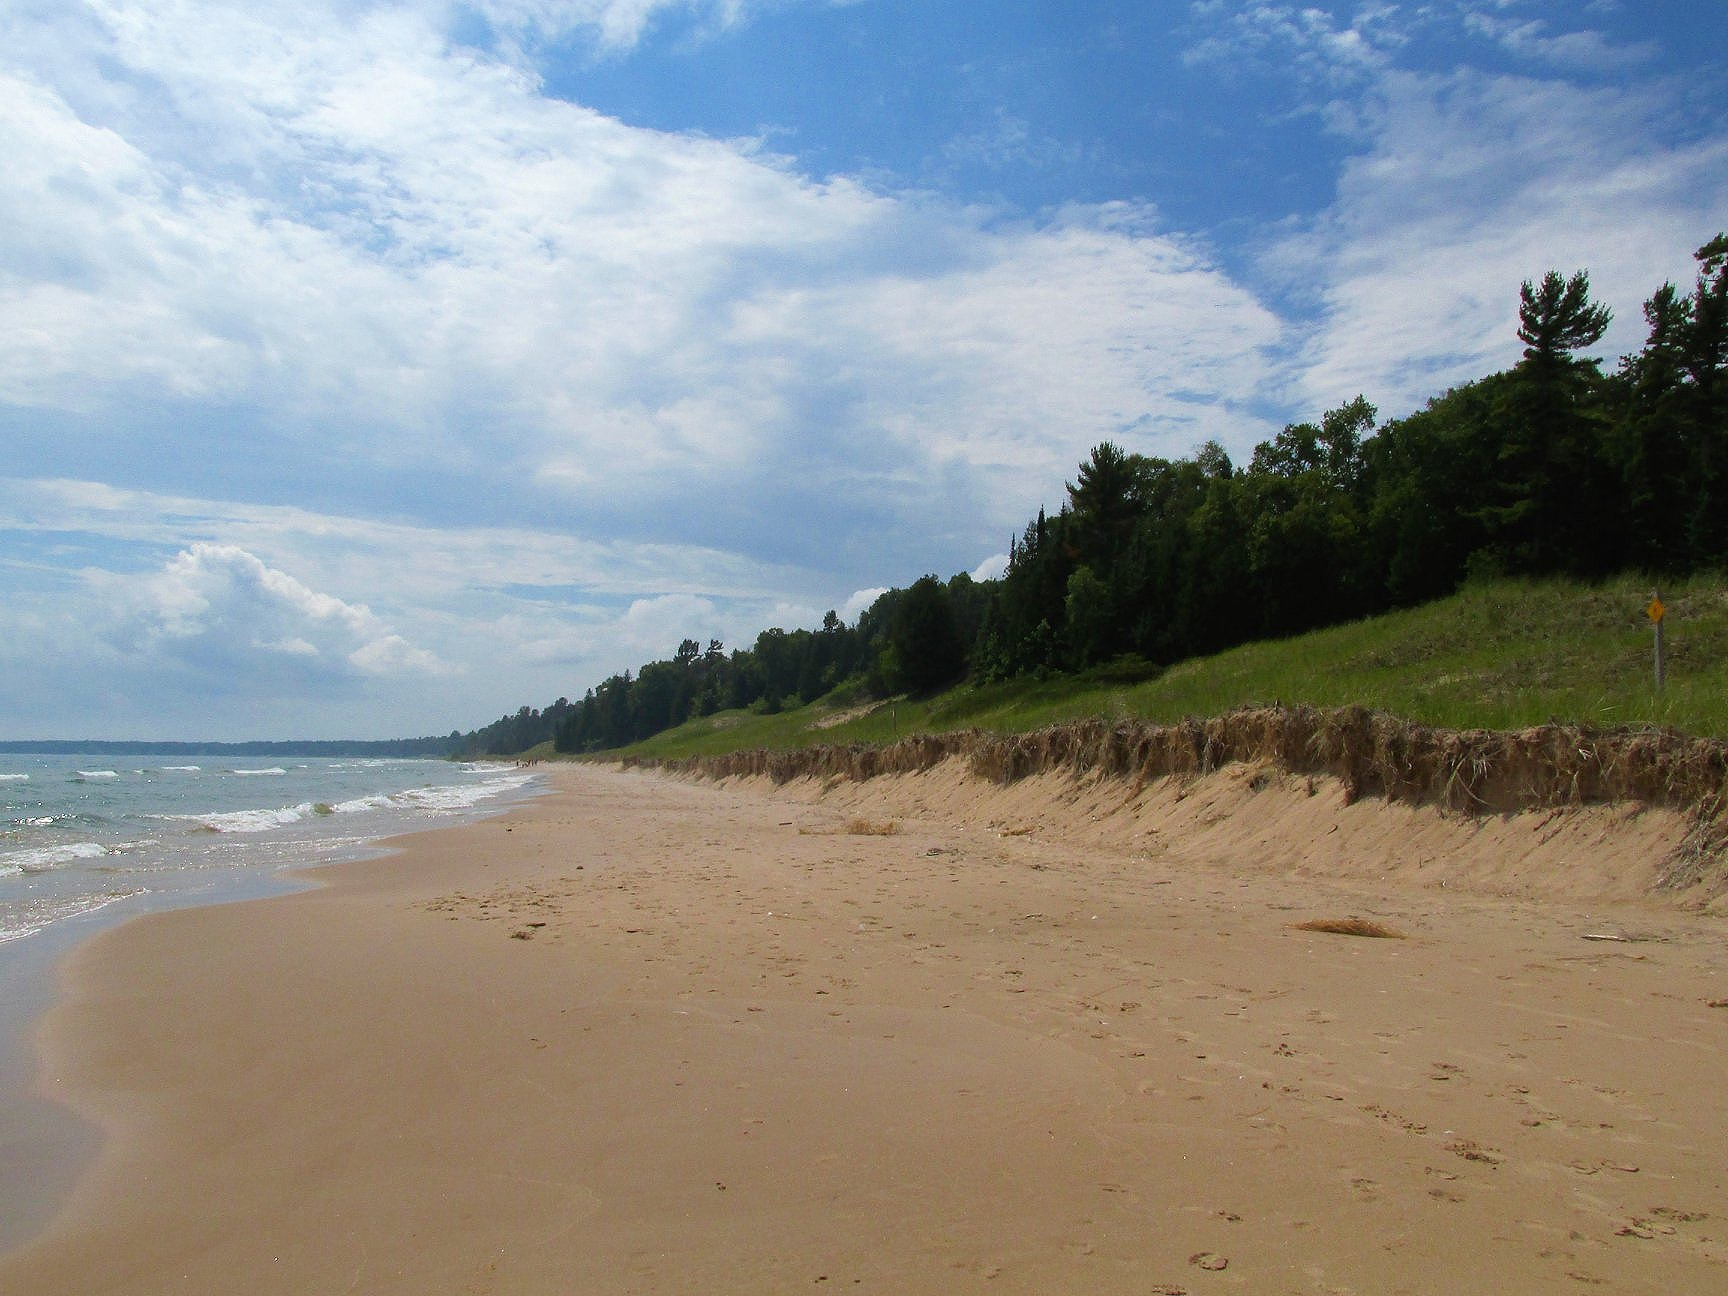 Whitefish Dunes State Park is just a short drive north of Sturgeon Bay.